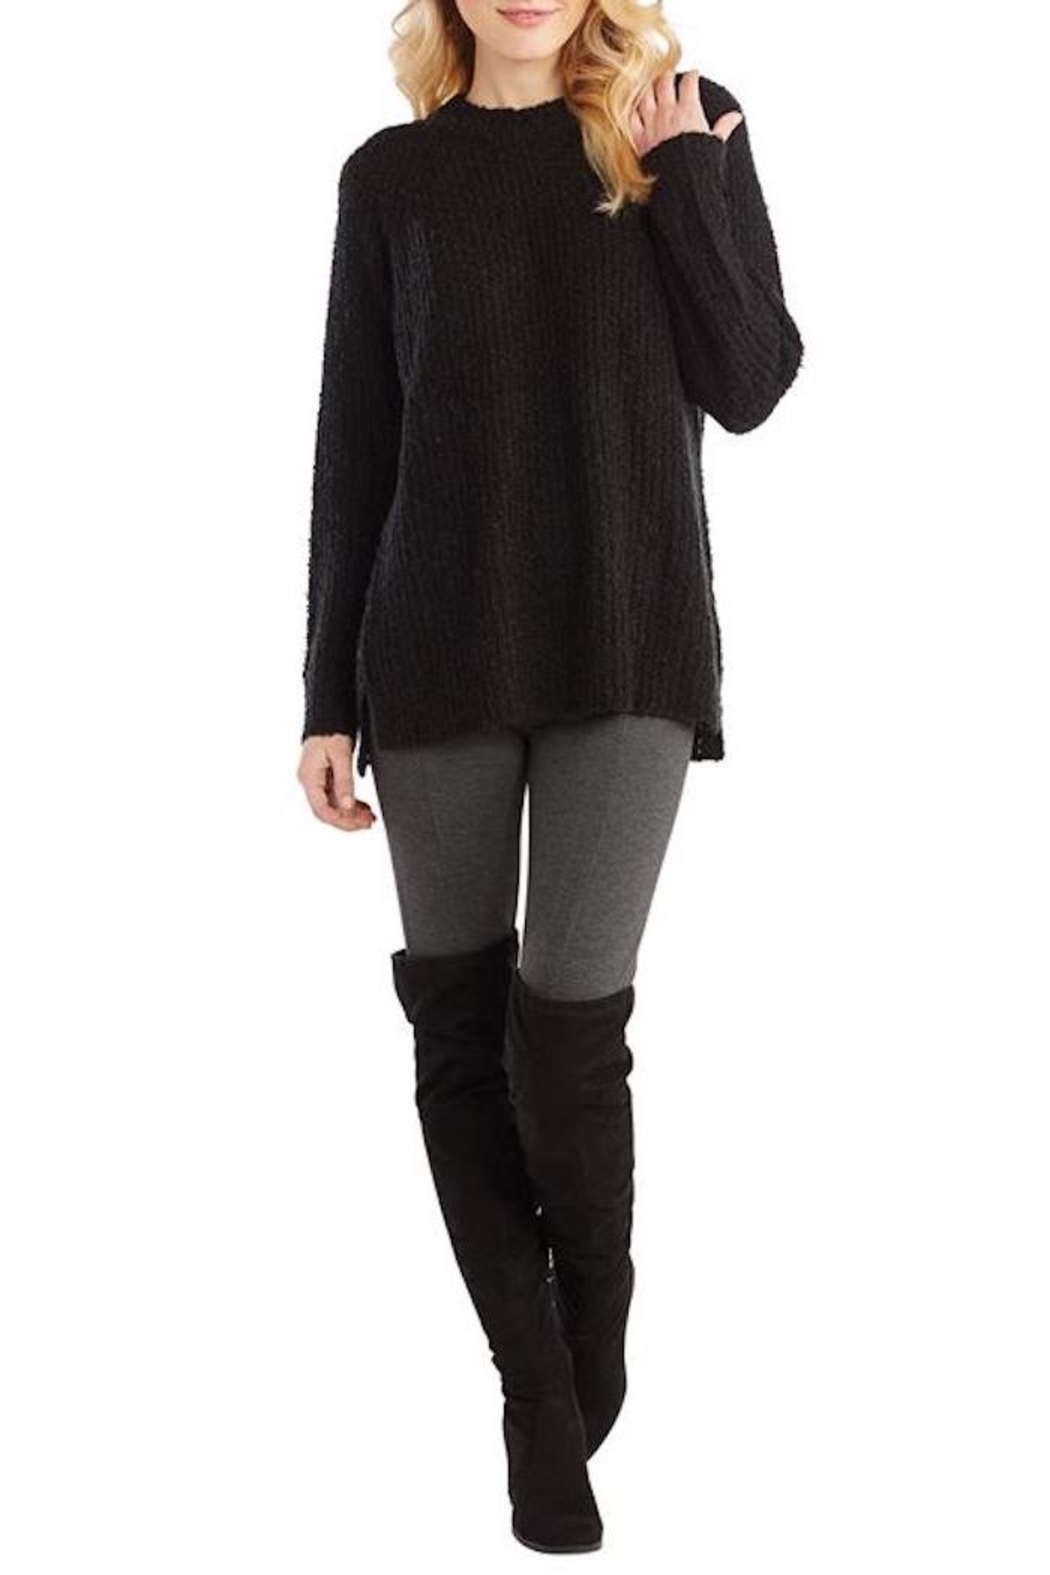 Mud Pie Mara Black Sweater - Main Image